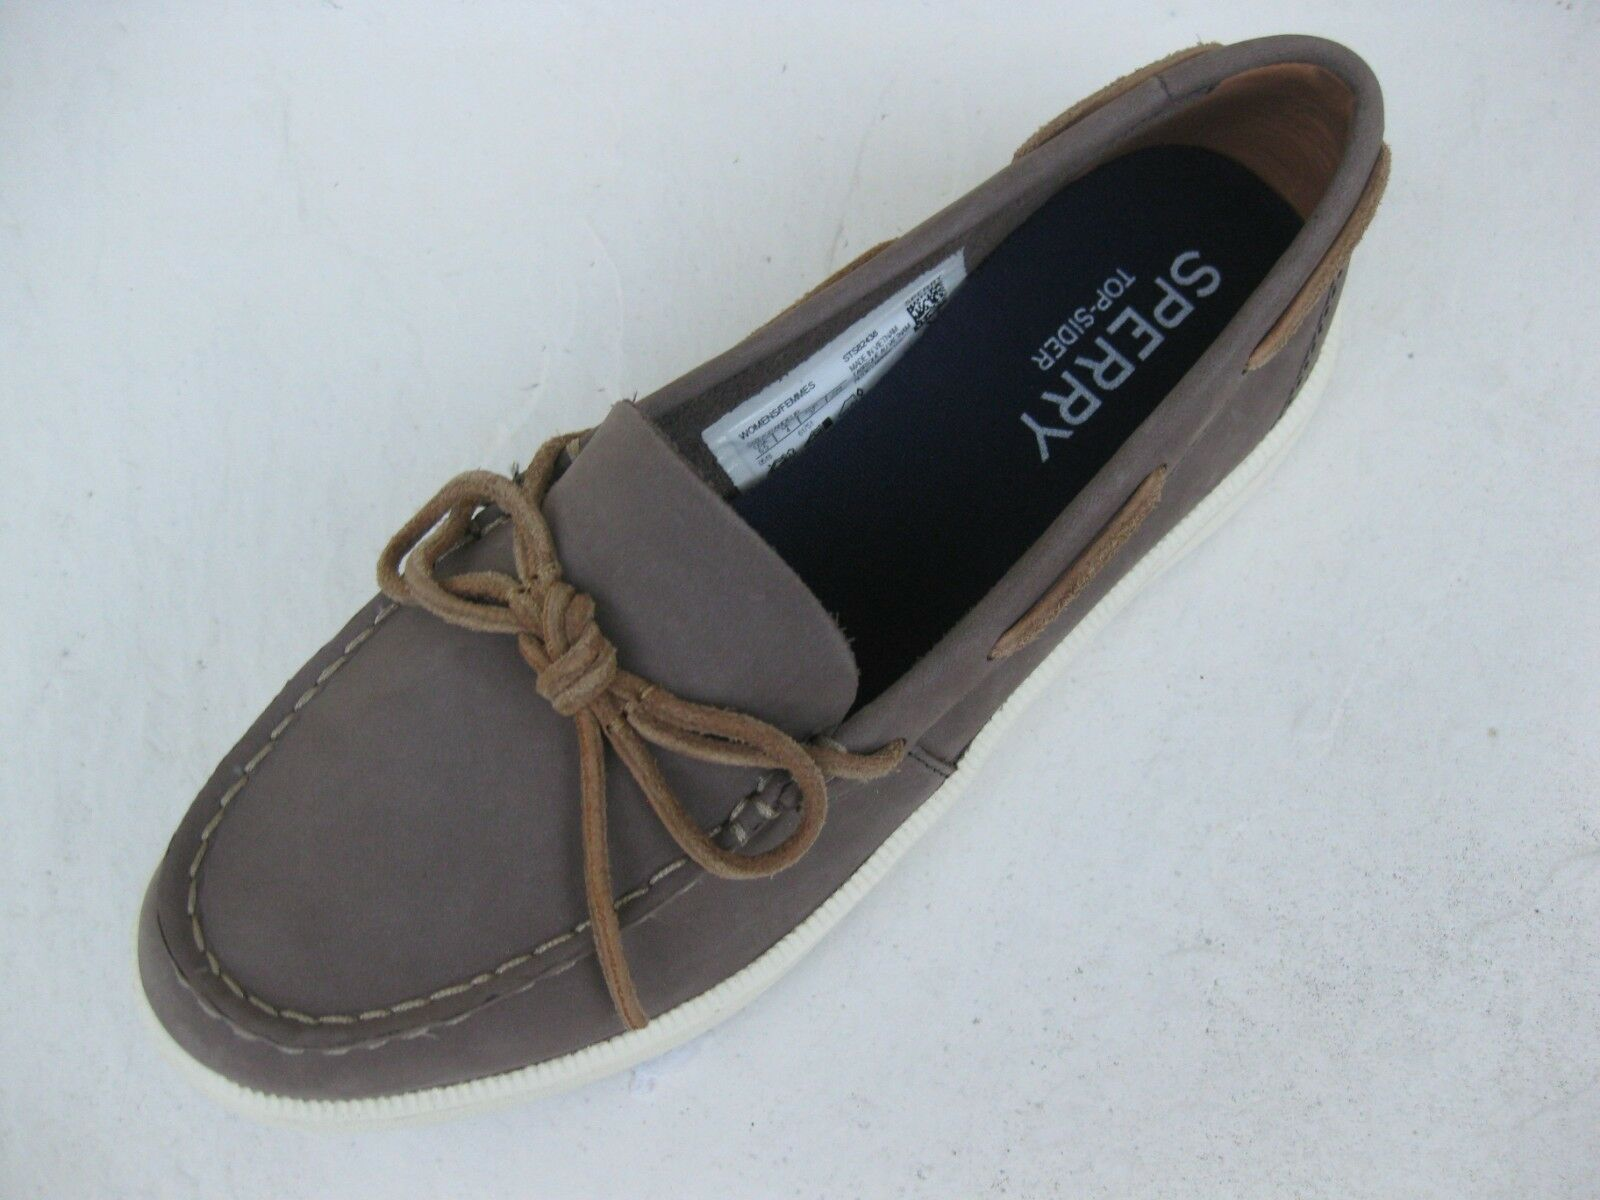 Sperry Topsider Womens shoes NEW  90 Oasis Canal Graphite Grey Leather 11 M